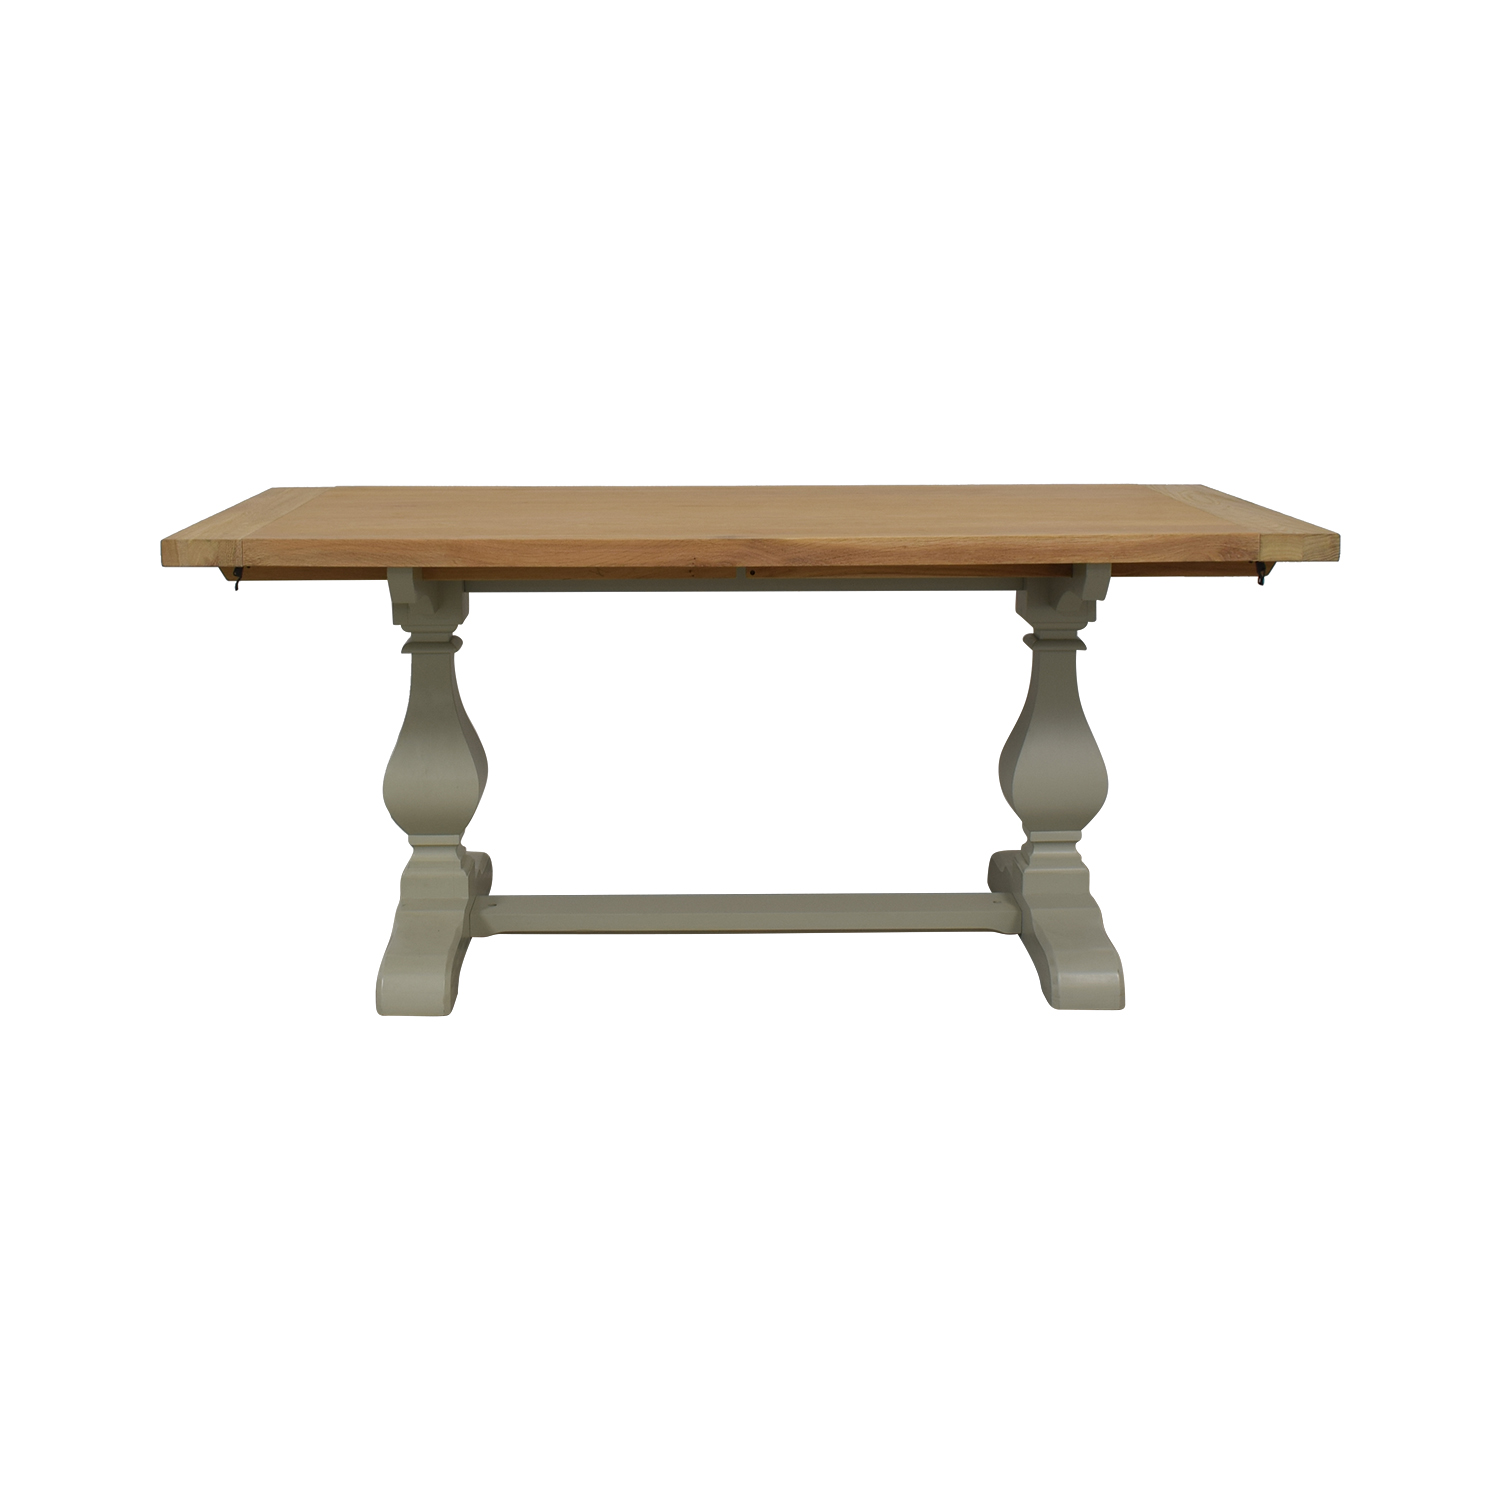 John Lewis Beech Wood and Light Green Extendable Dining Table sale